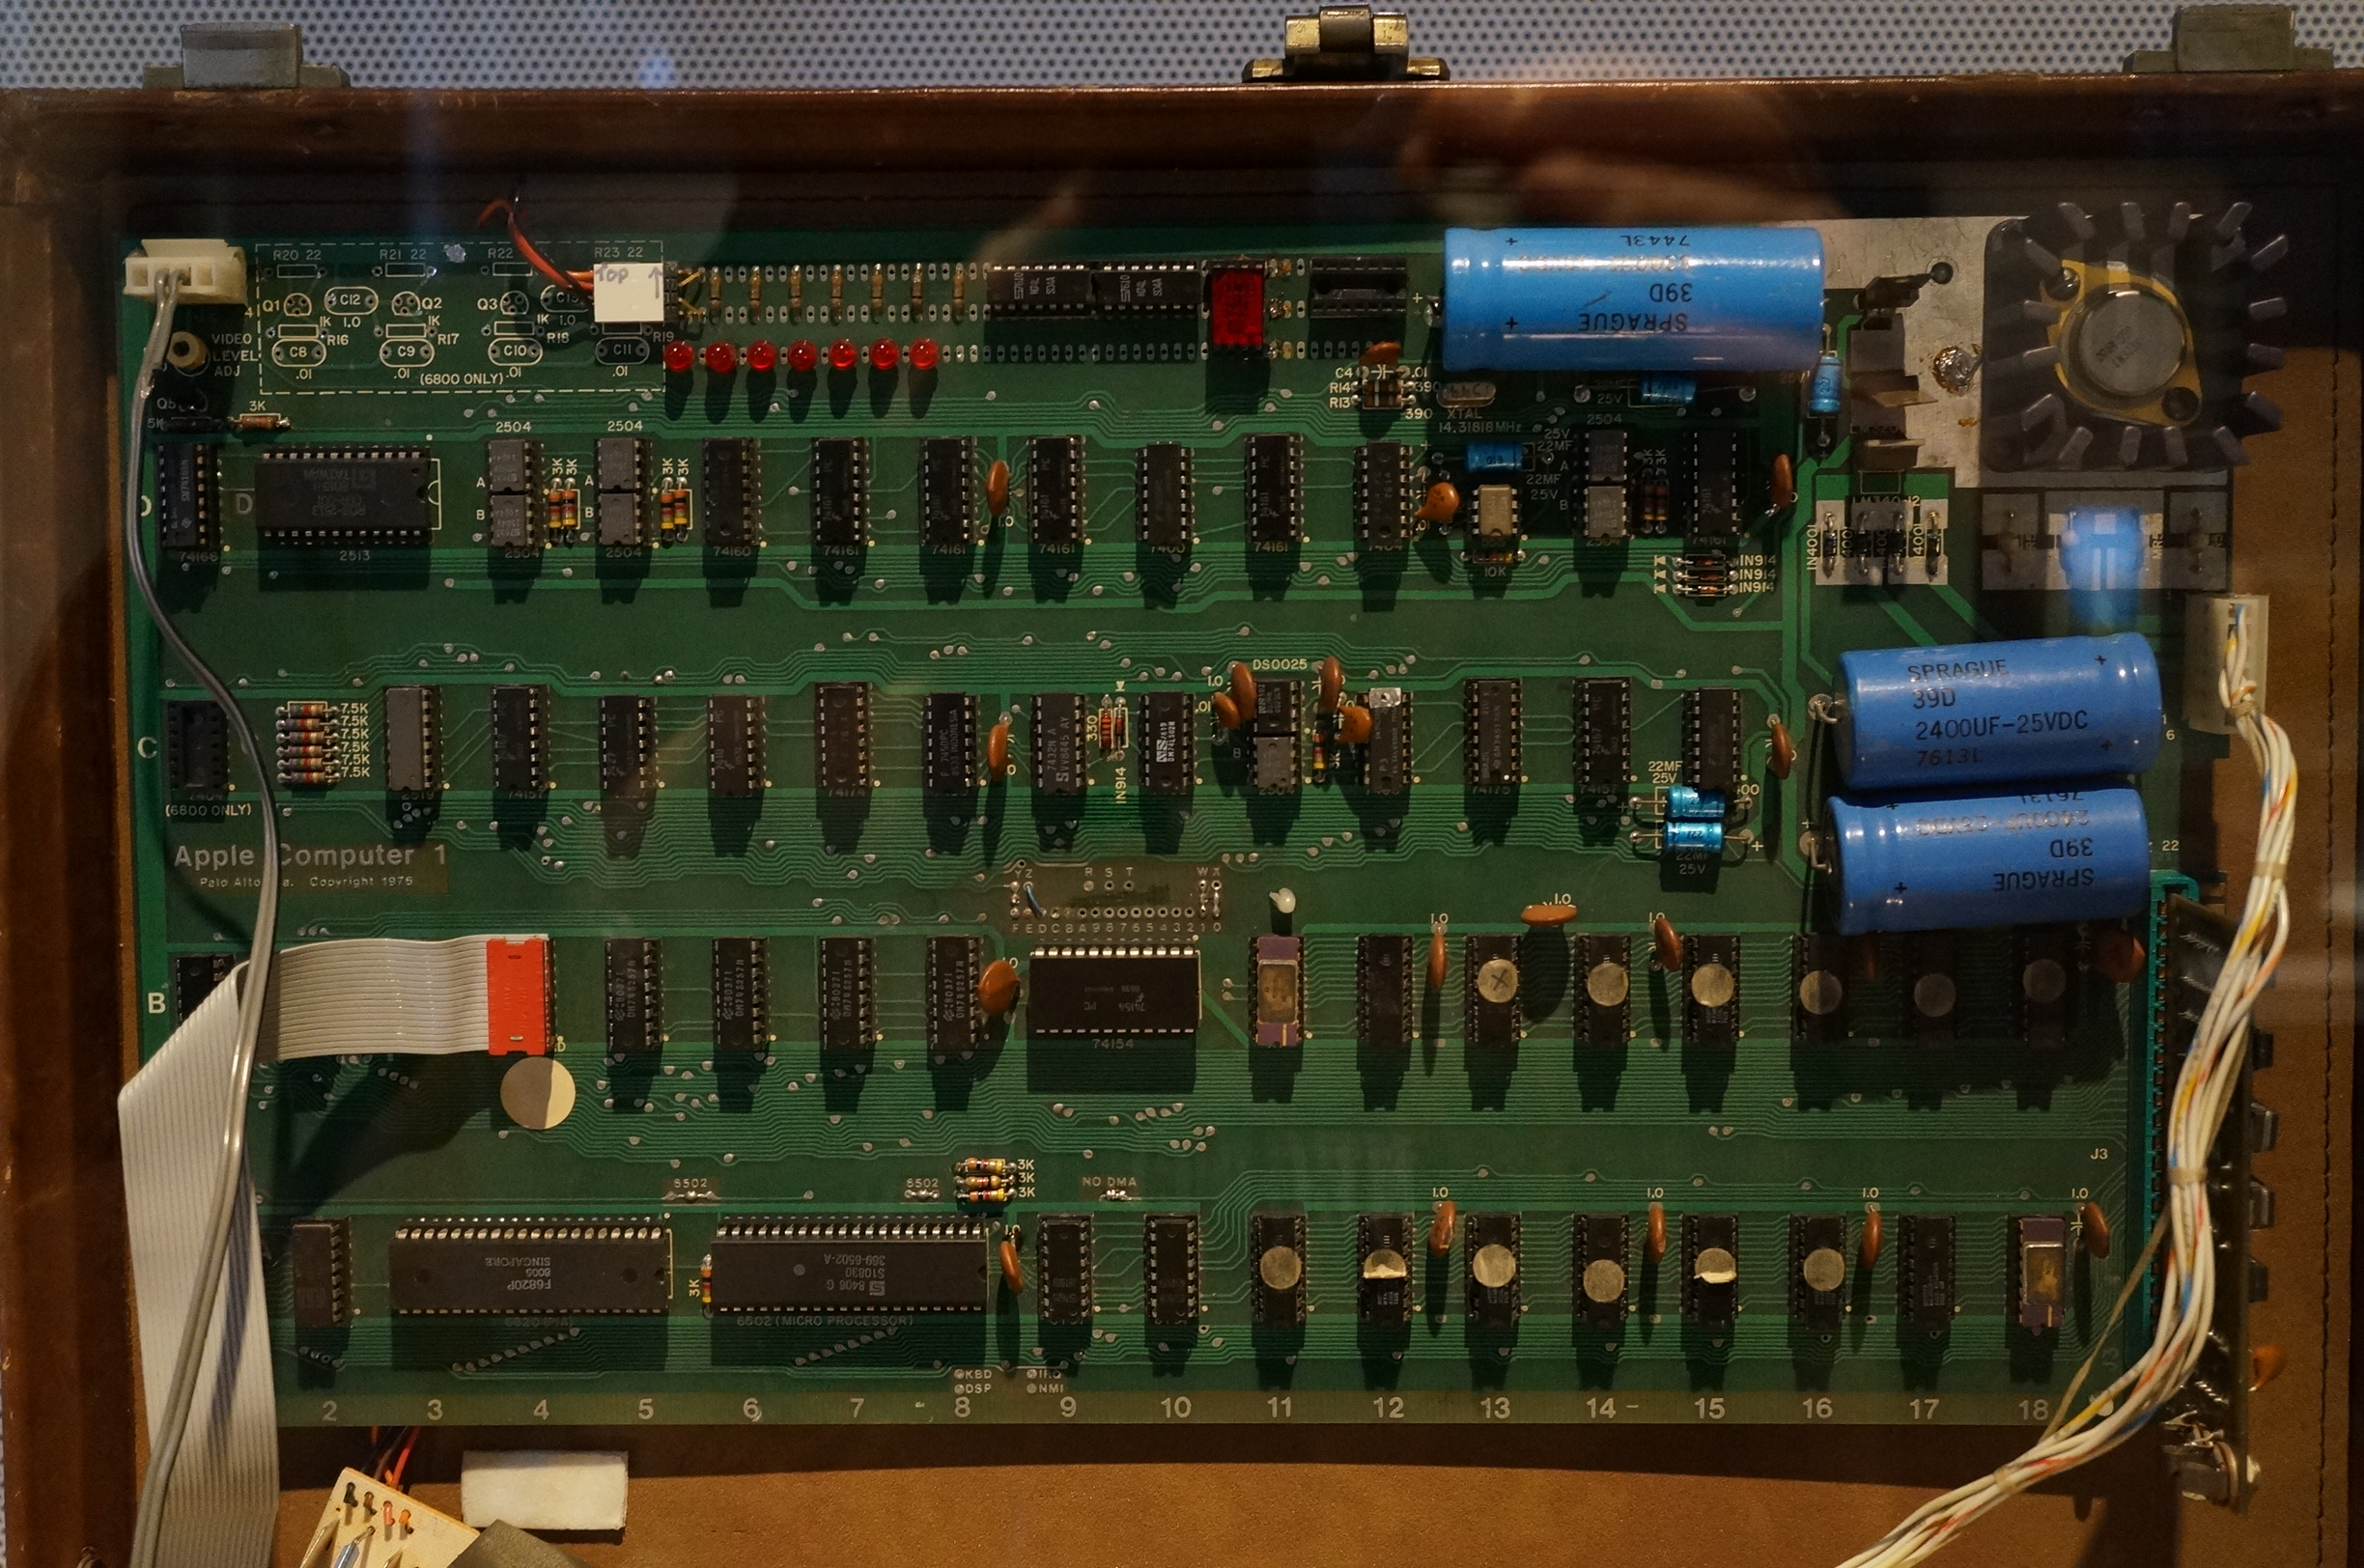 File:Original 1976 Apple 1 Computer PCB.JPG - Wikimedia Commons